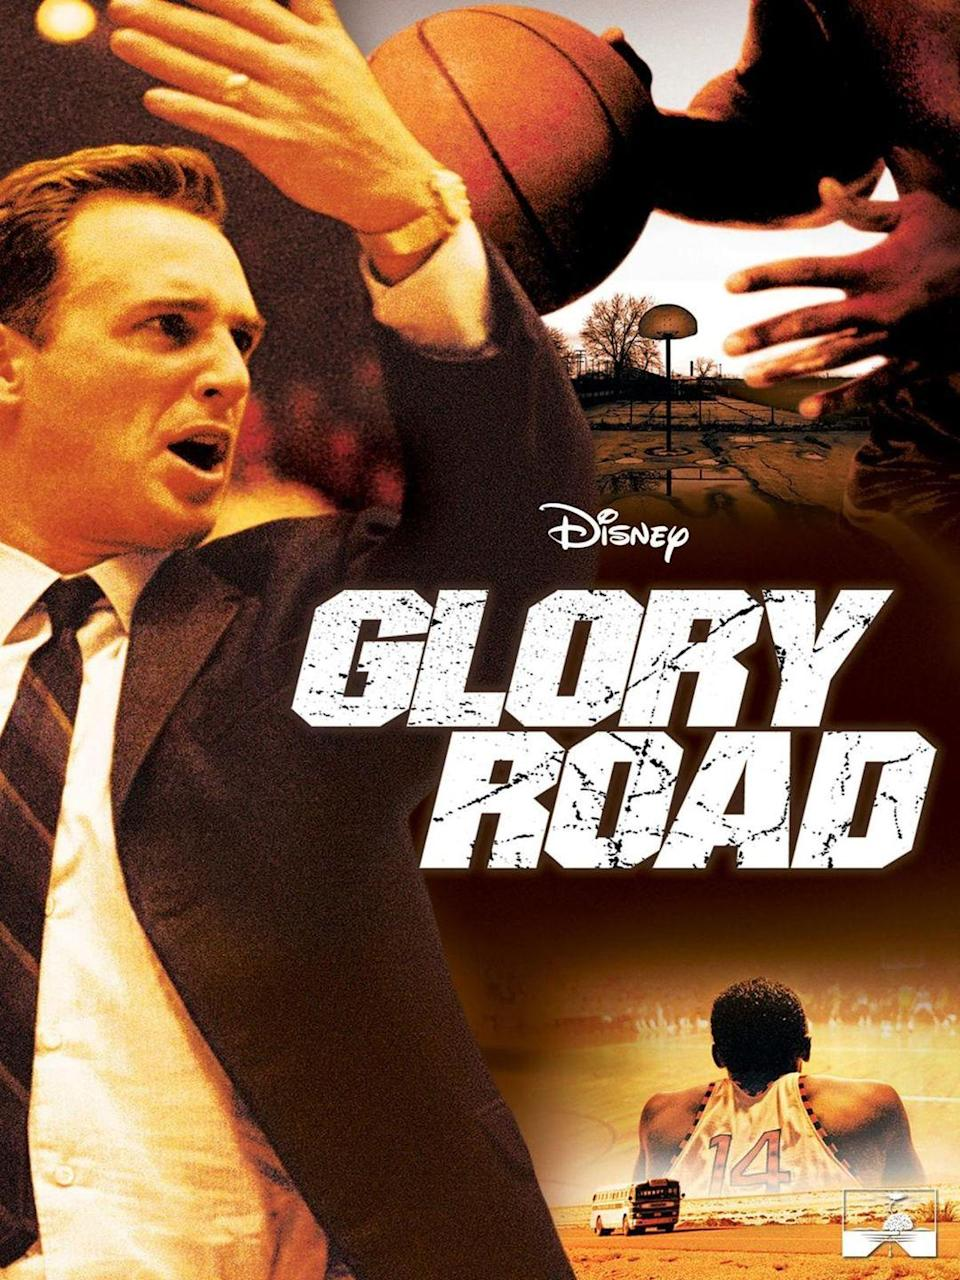 "<p><a class=""link rapid-noclick-resp"" href=""https://go.redirectingat.com?id=74968X1596630&url=https%3A%2F%2Fwww.disneyplus.com%2Fmovies%2Fglory-road%2F33N7pEEGffQ7&sref=https%3A%2F%2Fwww.womansday.com%2Flife%2Fentertainment%2Fg32745225%2Fmovies-about-race-racism-kids%2F"" rel=""nofollow noopener"" target=""_blank"" data-ylk=""slk:STREAM NOW"">STREAM NOW</a></p><p>This sports flick is based on the events of the 1966 NCAA University Division Basketball Championship, telling the story of a white college basketball coach who introduced the first all-Black starting lineup in NCAA history. As well as dealing with racial tension within his team, Don Haskins also faces criticism from those who aren't ready to see Black athletes dominate the court, and the movie follows Haskins' journey to silence those critics. </p>"